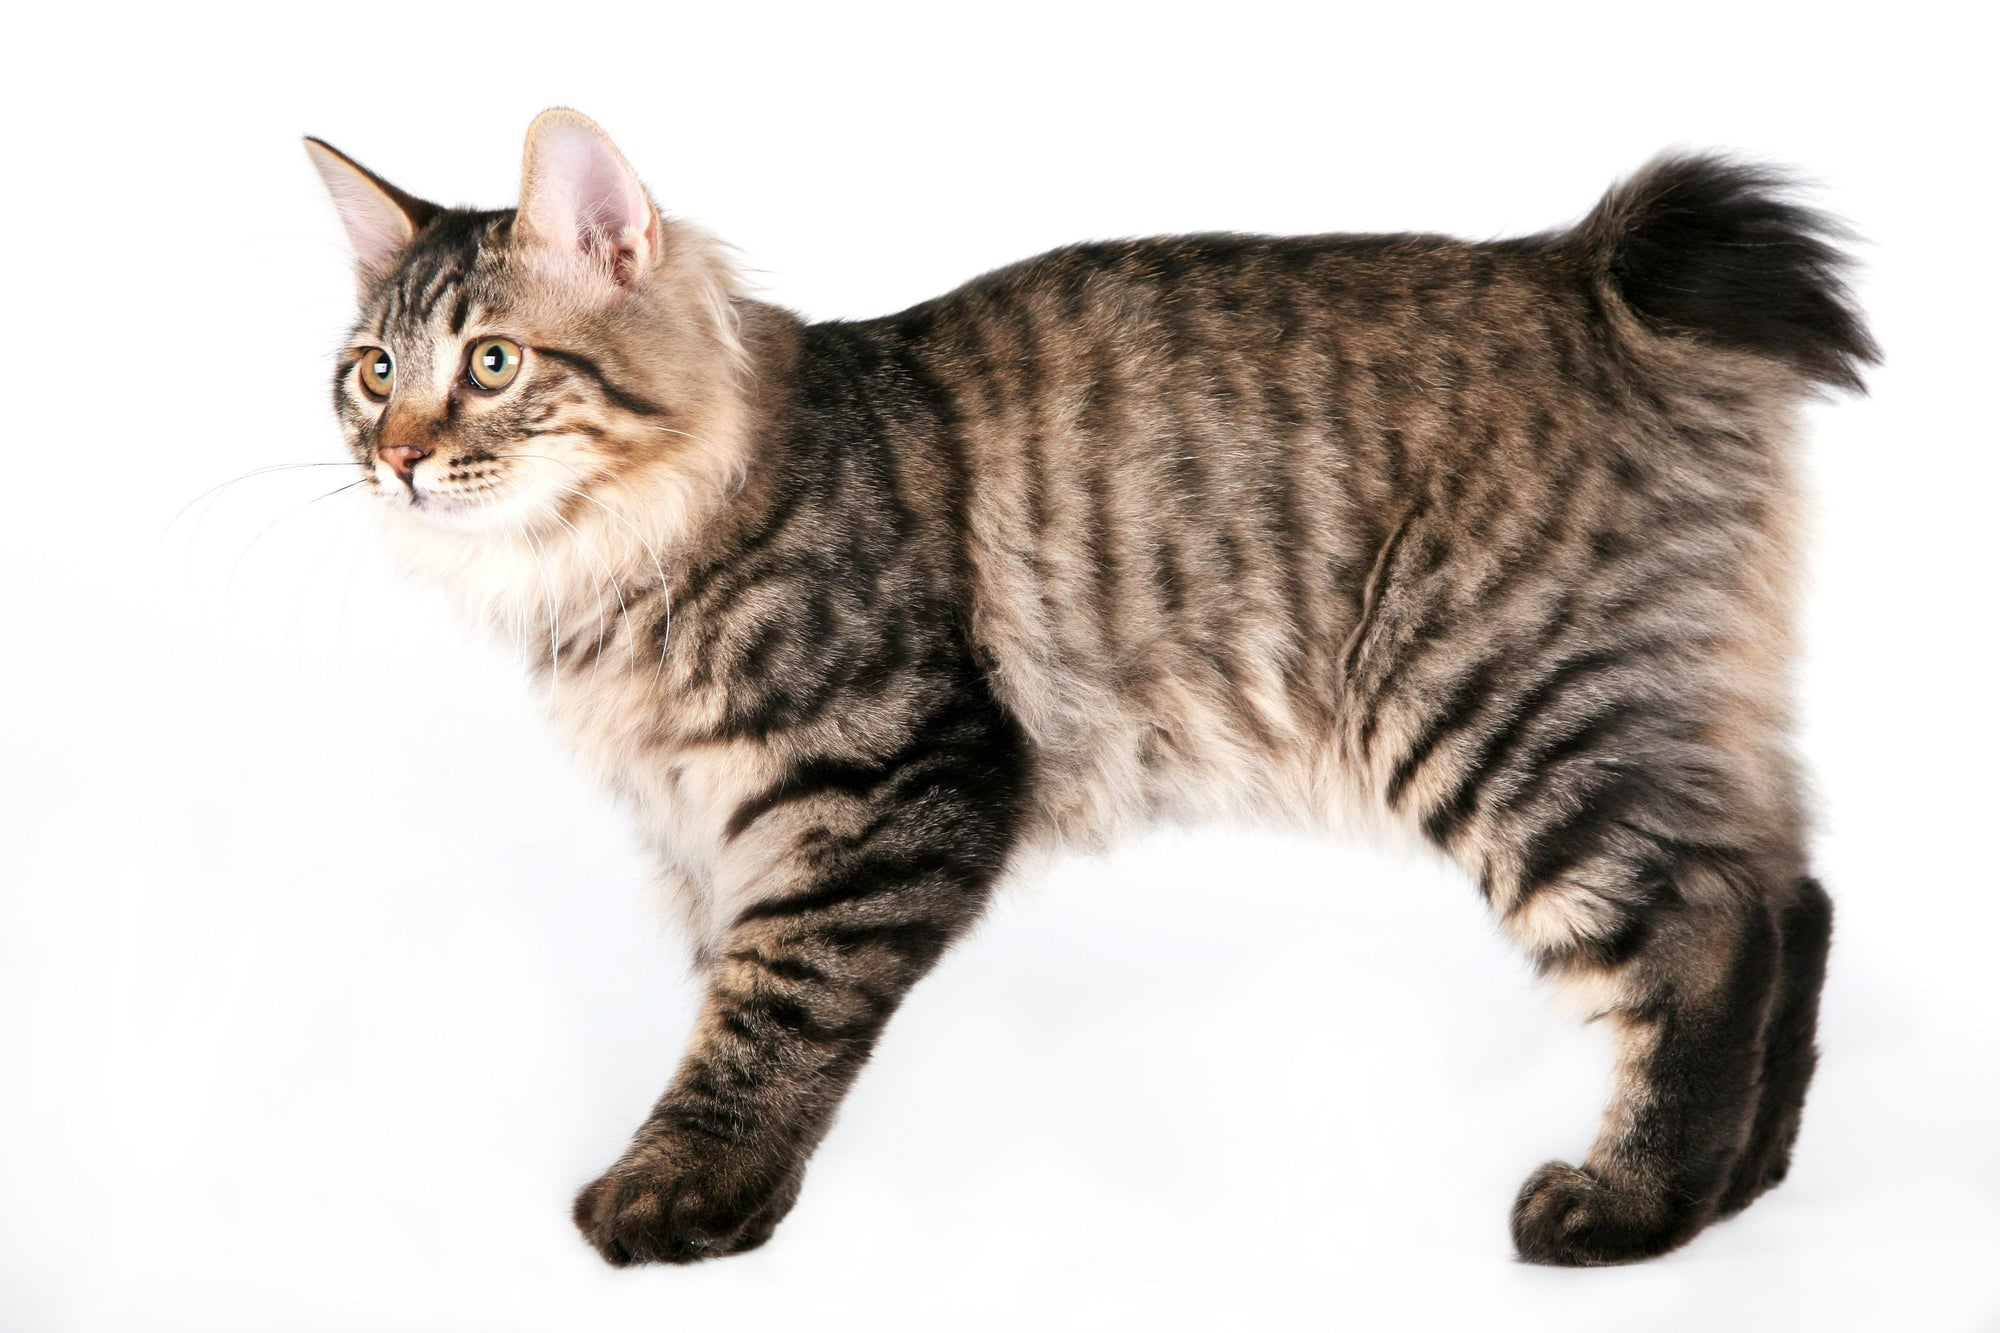 Heard About The Kurilian Bobtail Cats?